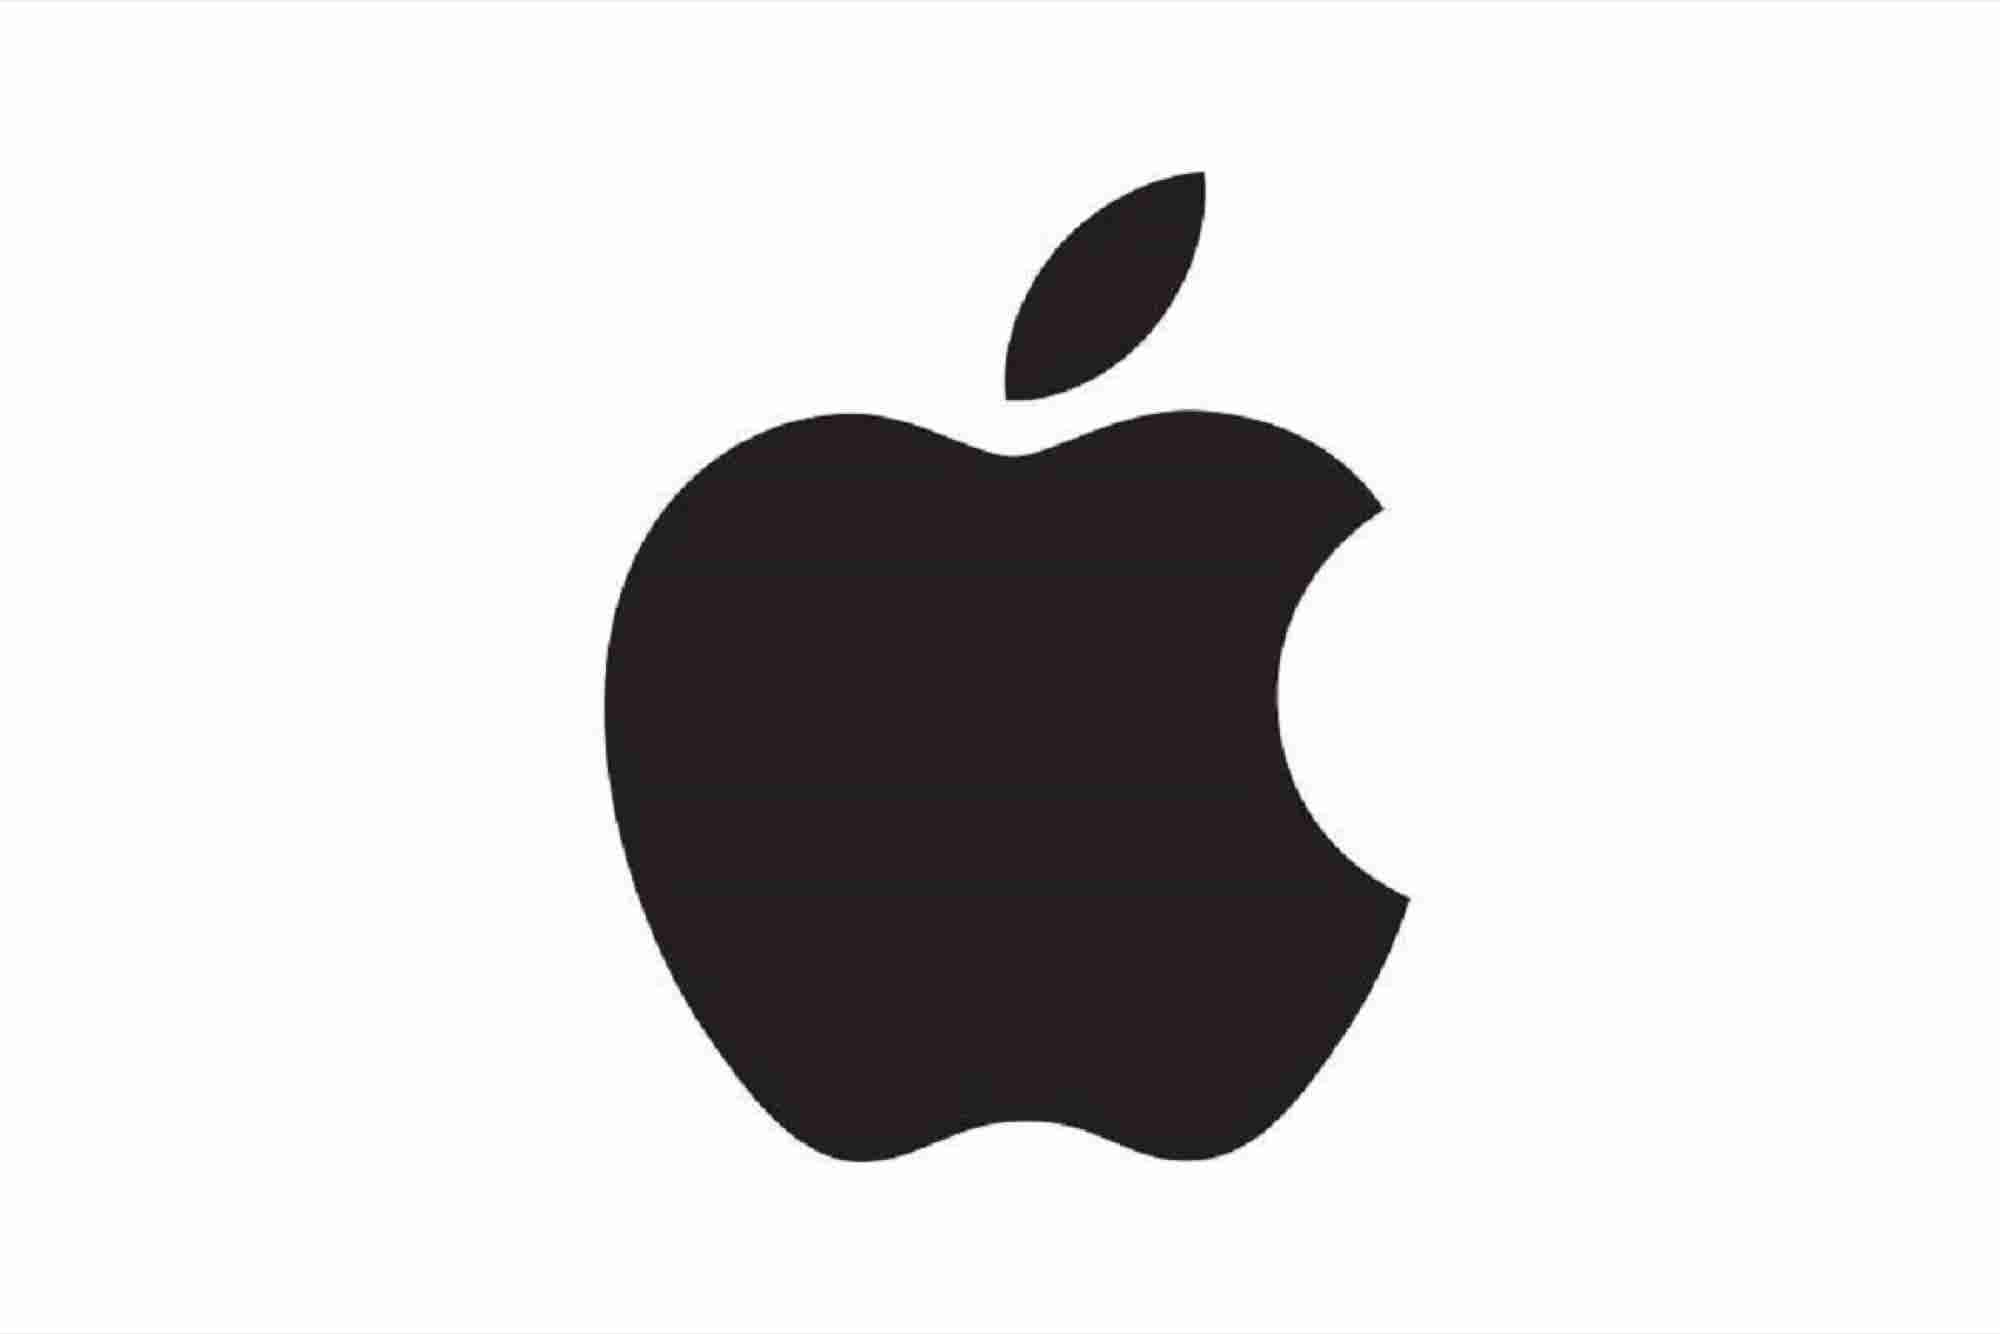 Apple's New Memoji and Tech Mahindra CEO's Comment on IT Grads. 4 Thin...